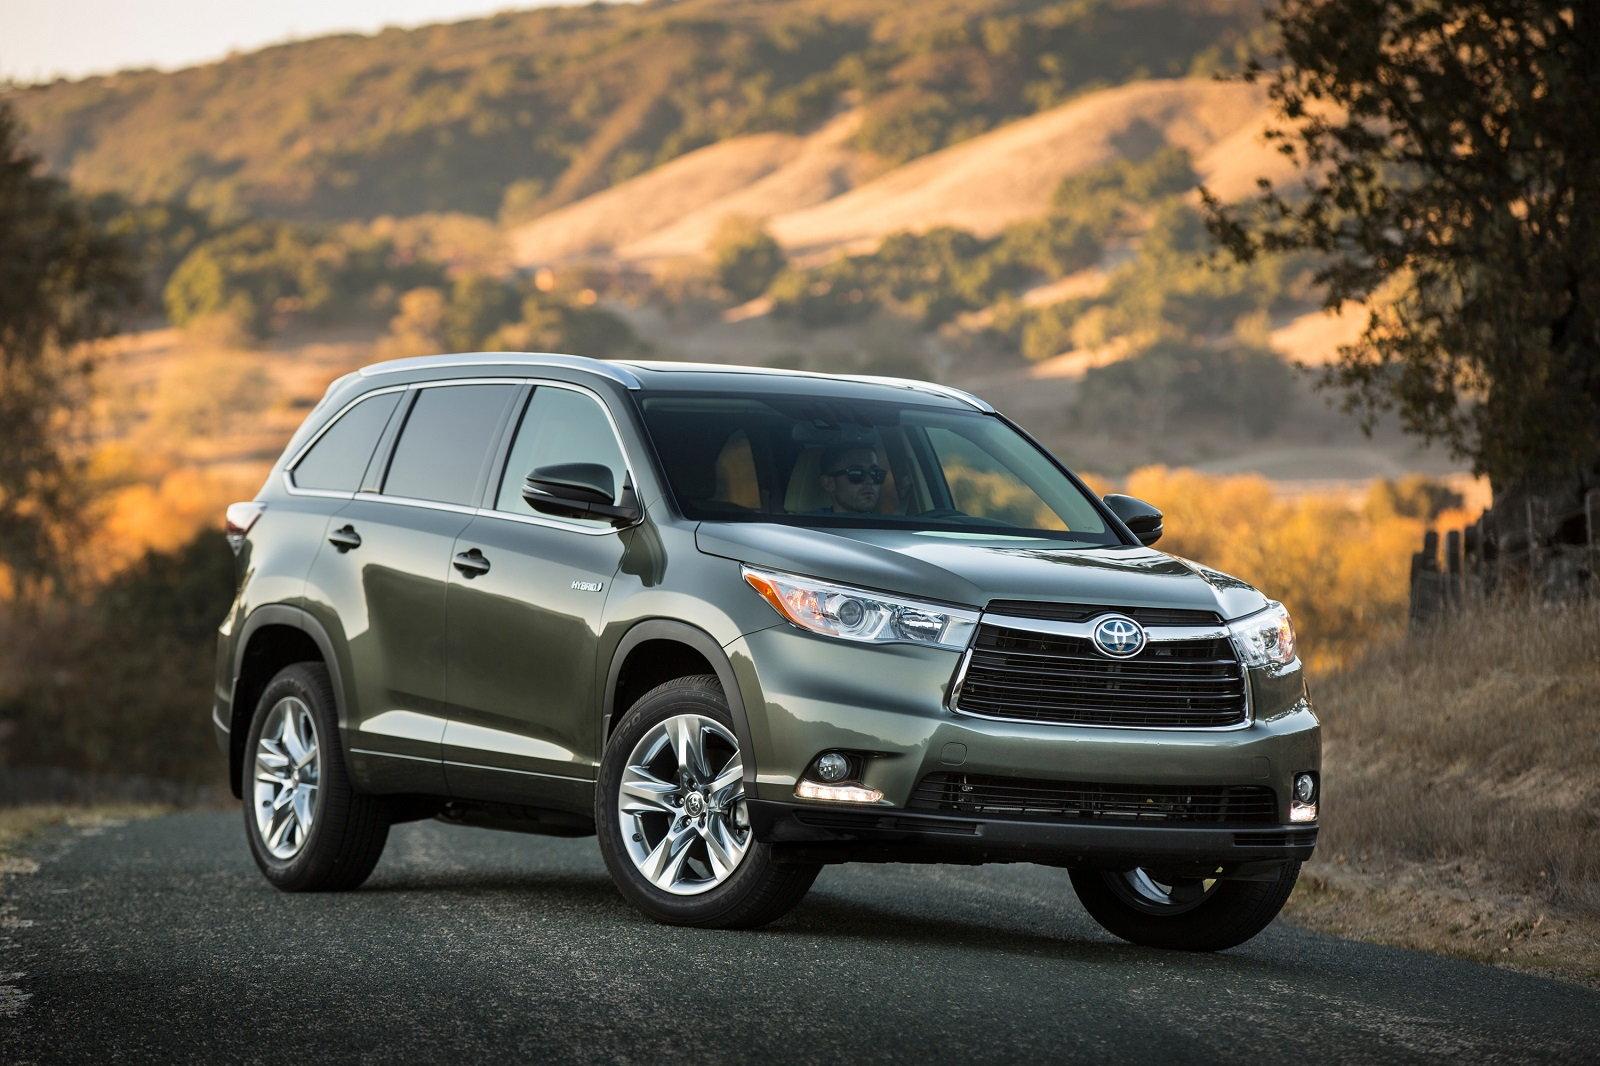 2015 Toyota Highlander Hybrid Styles & Features Highlights